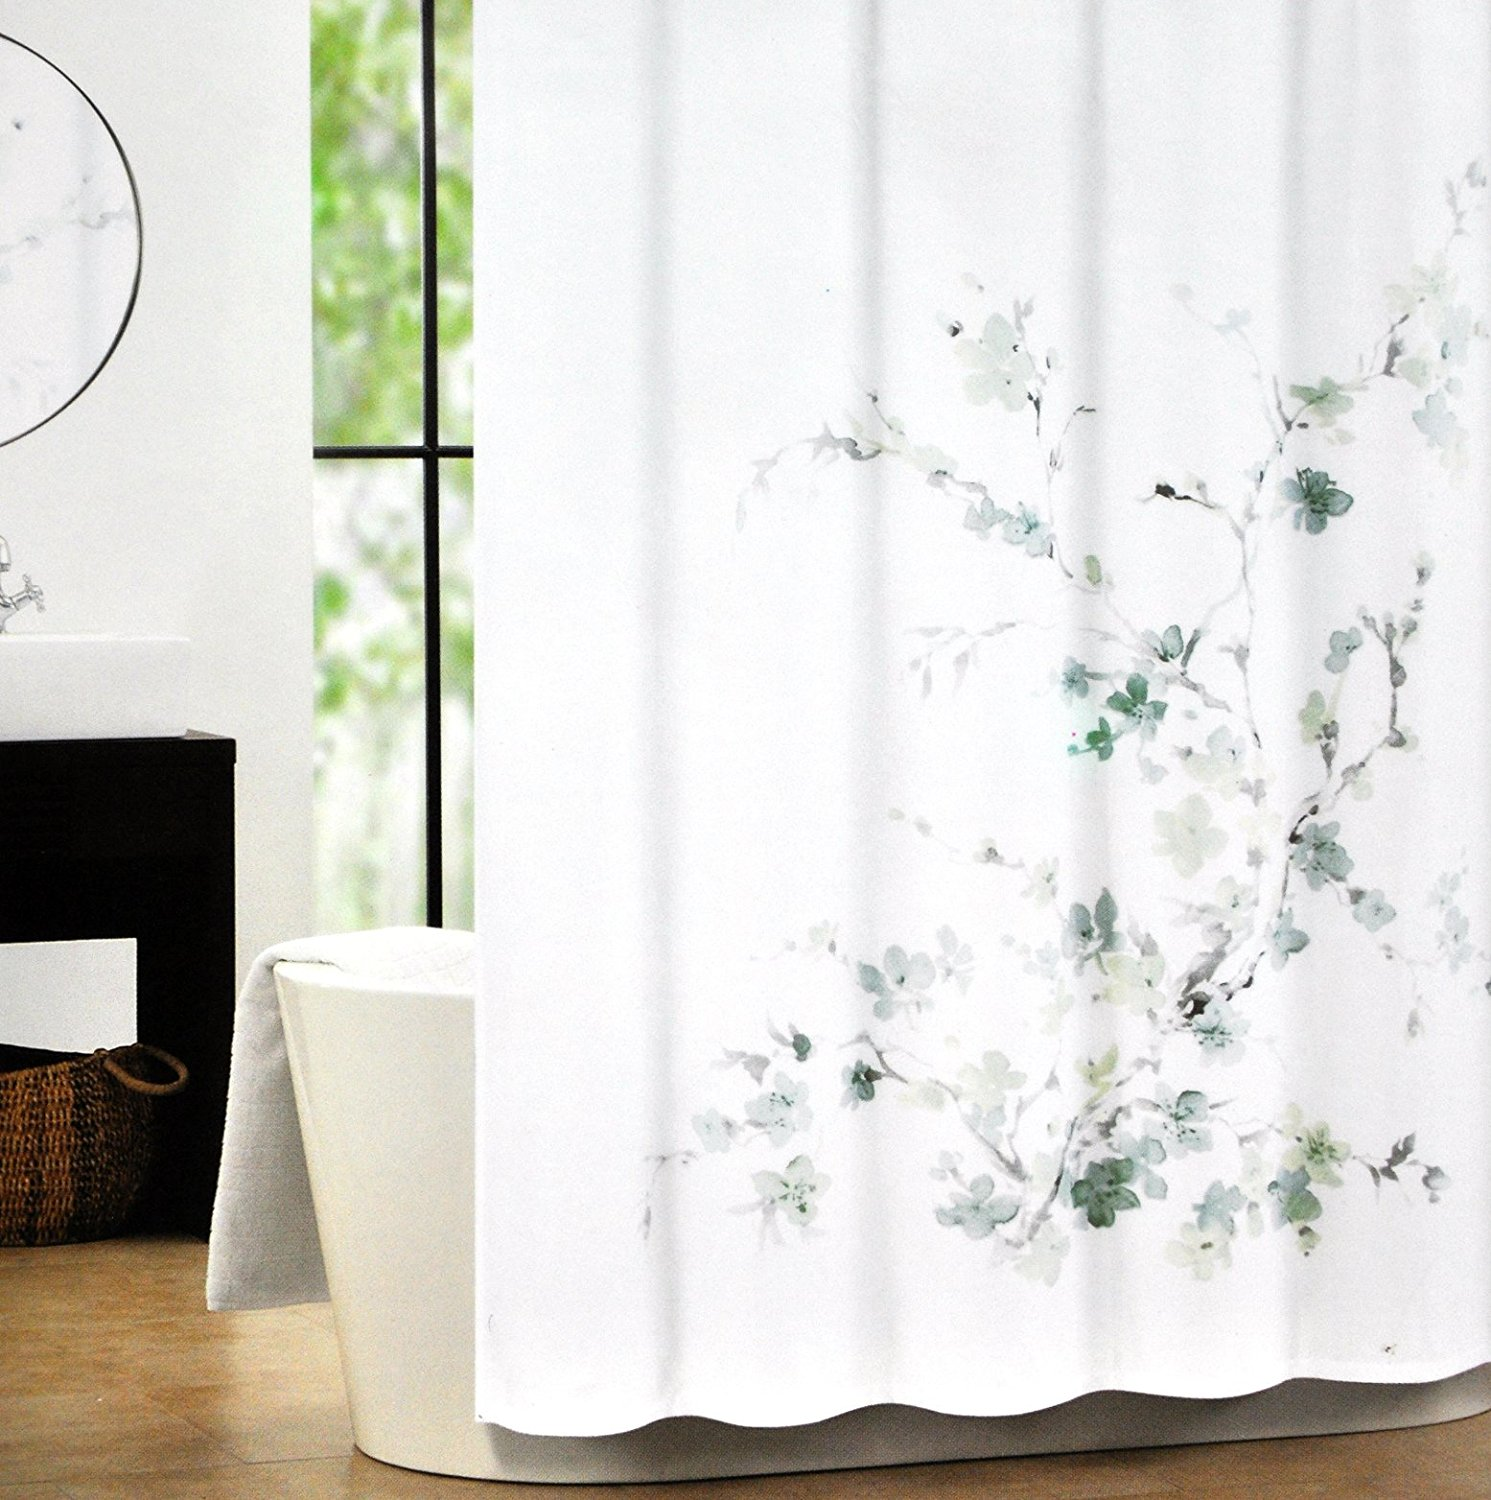 Charmant Get Quotations · Tahari Luxury Cotton Blend Shower Curtain Printemps Gray  Aqua Sage Floral Branches By Tahari Home